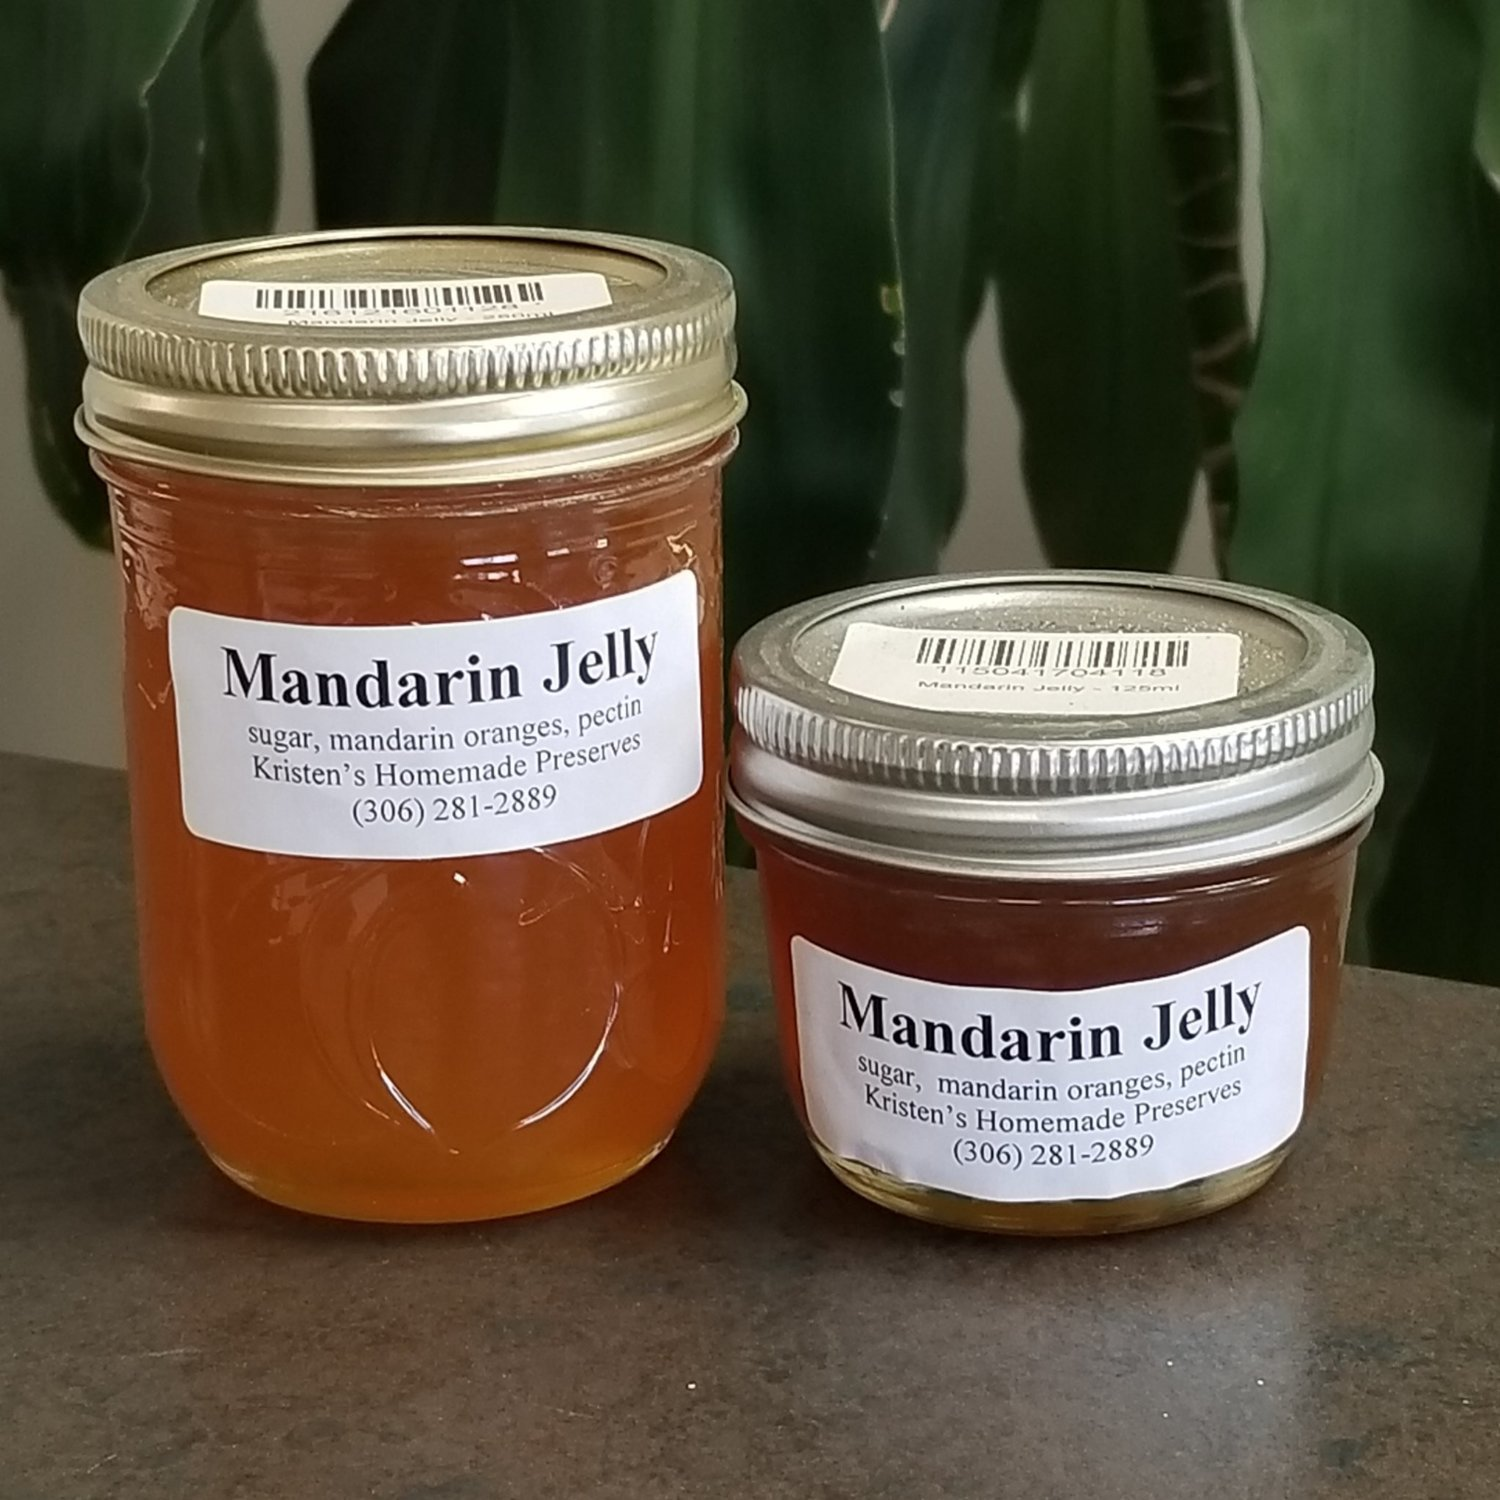 Mandarin Jelly